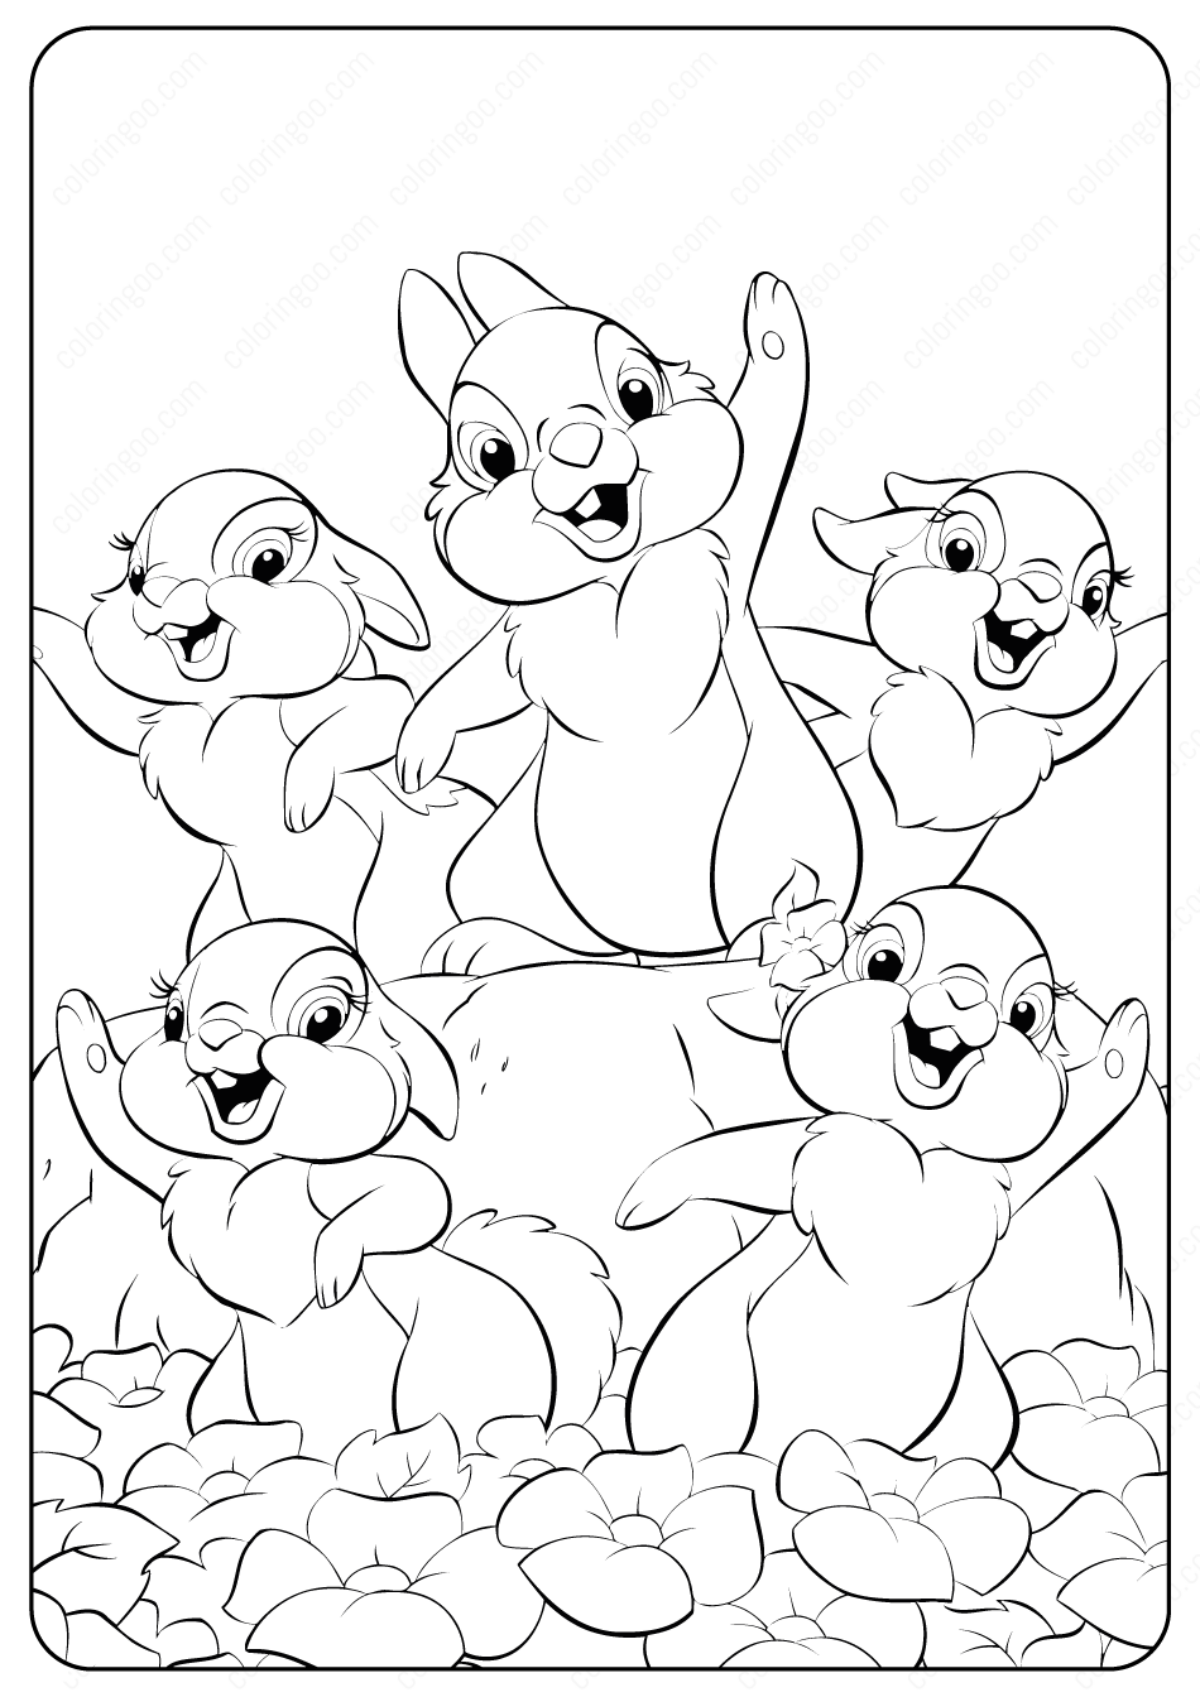 Free Printable Bambi Coloring Pages For Kids | 1697x1200